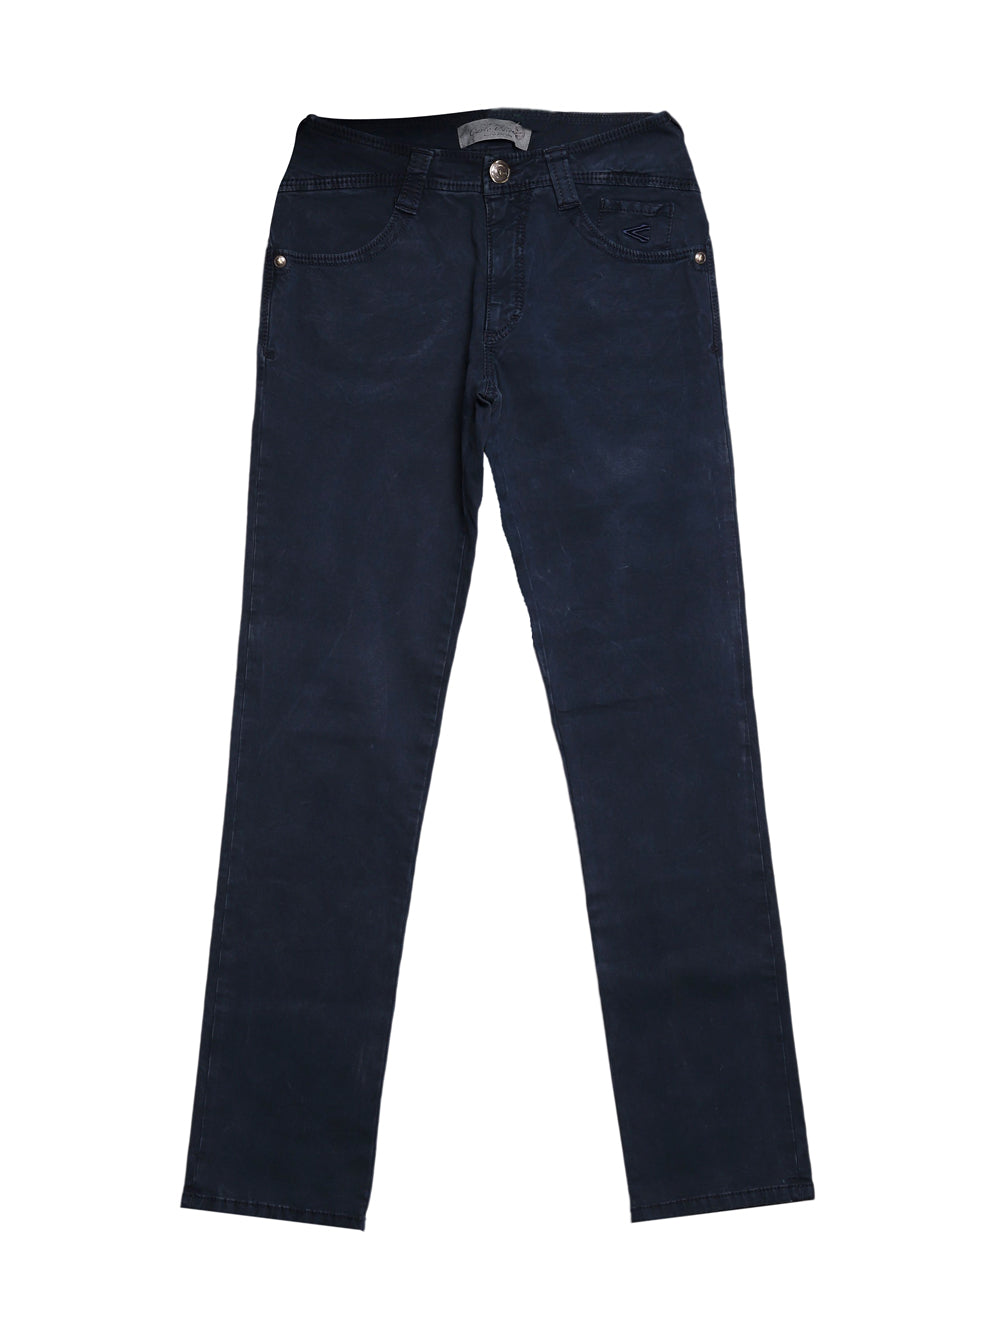 Front photo of Preloved Carlo Chionna (9.2) Blue Man's trousers - size 36/S